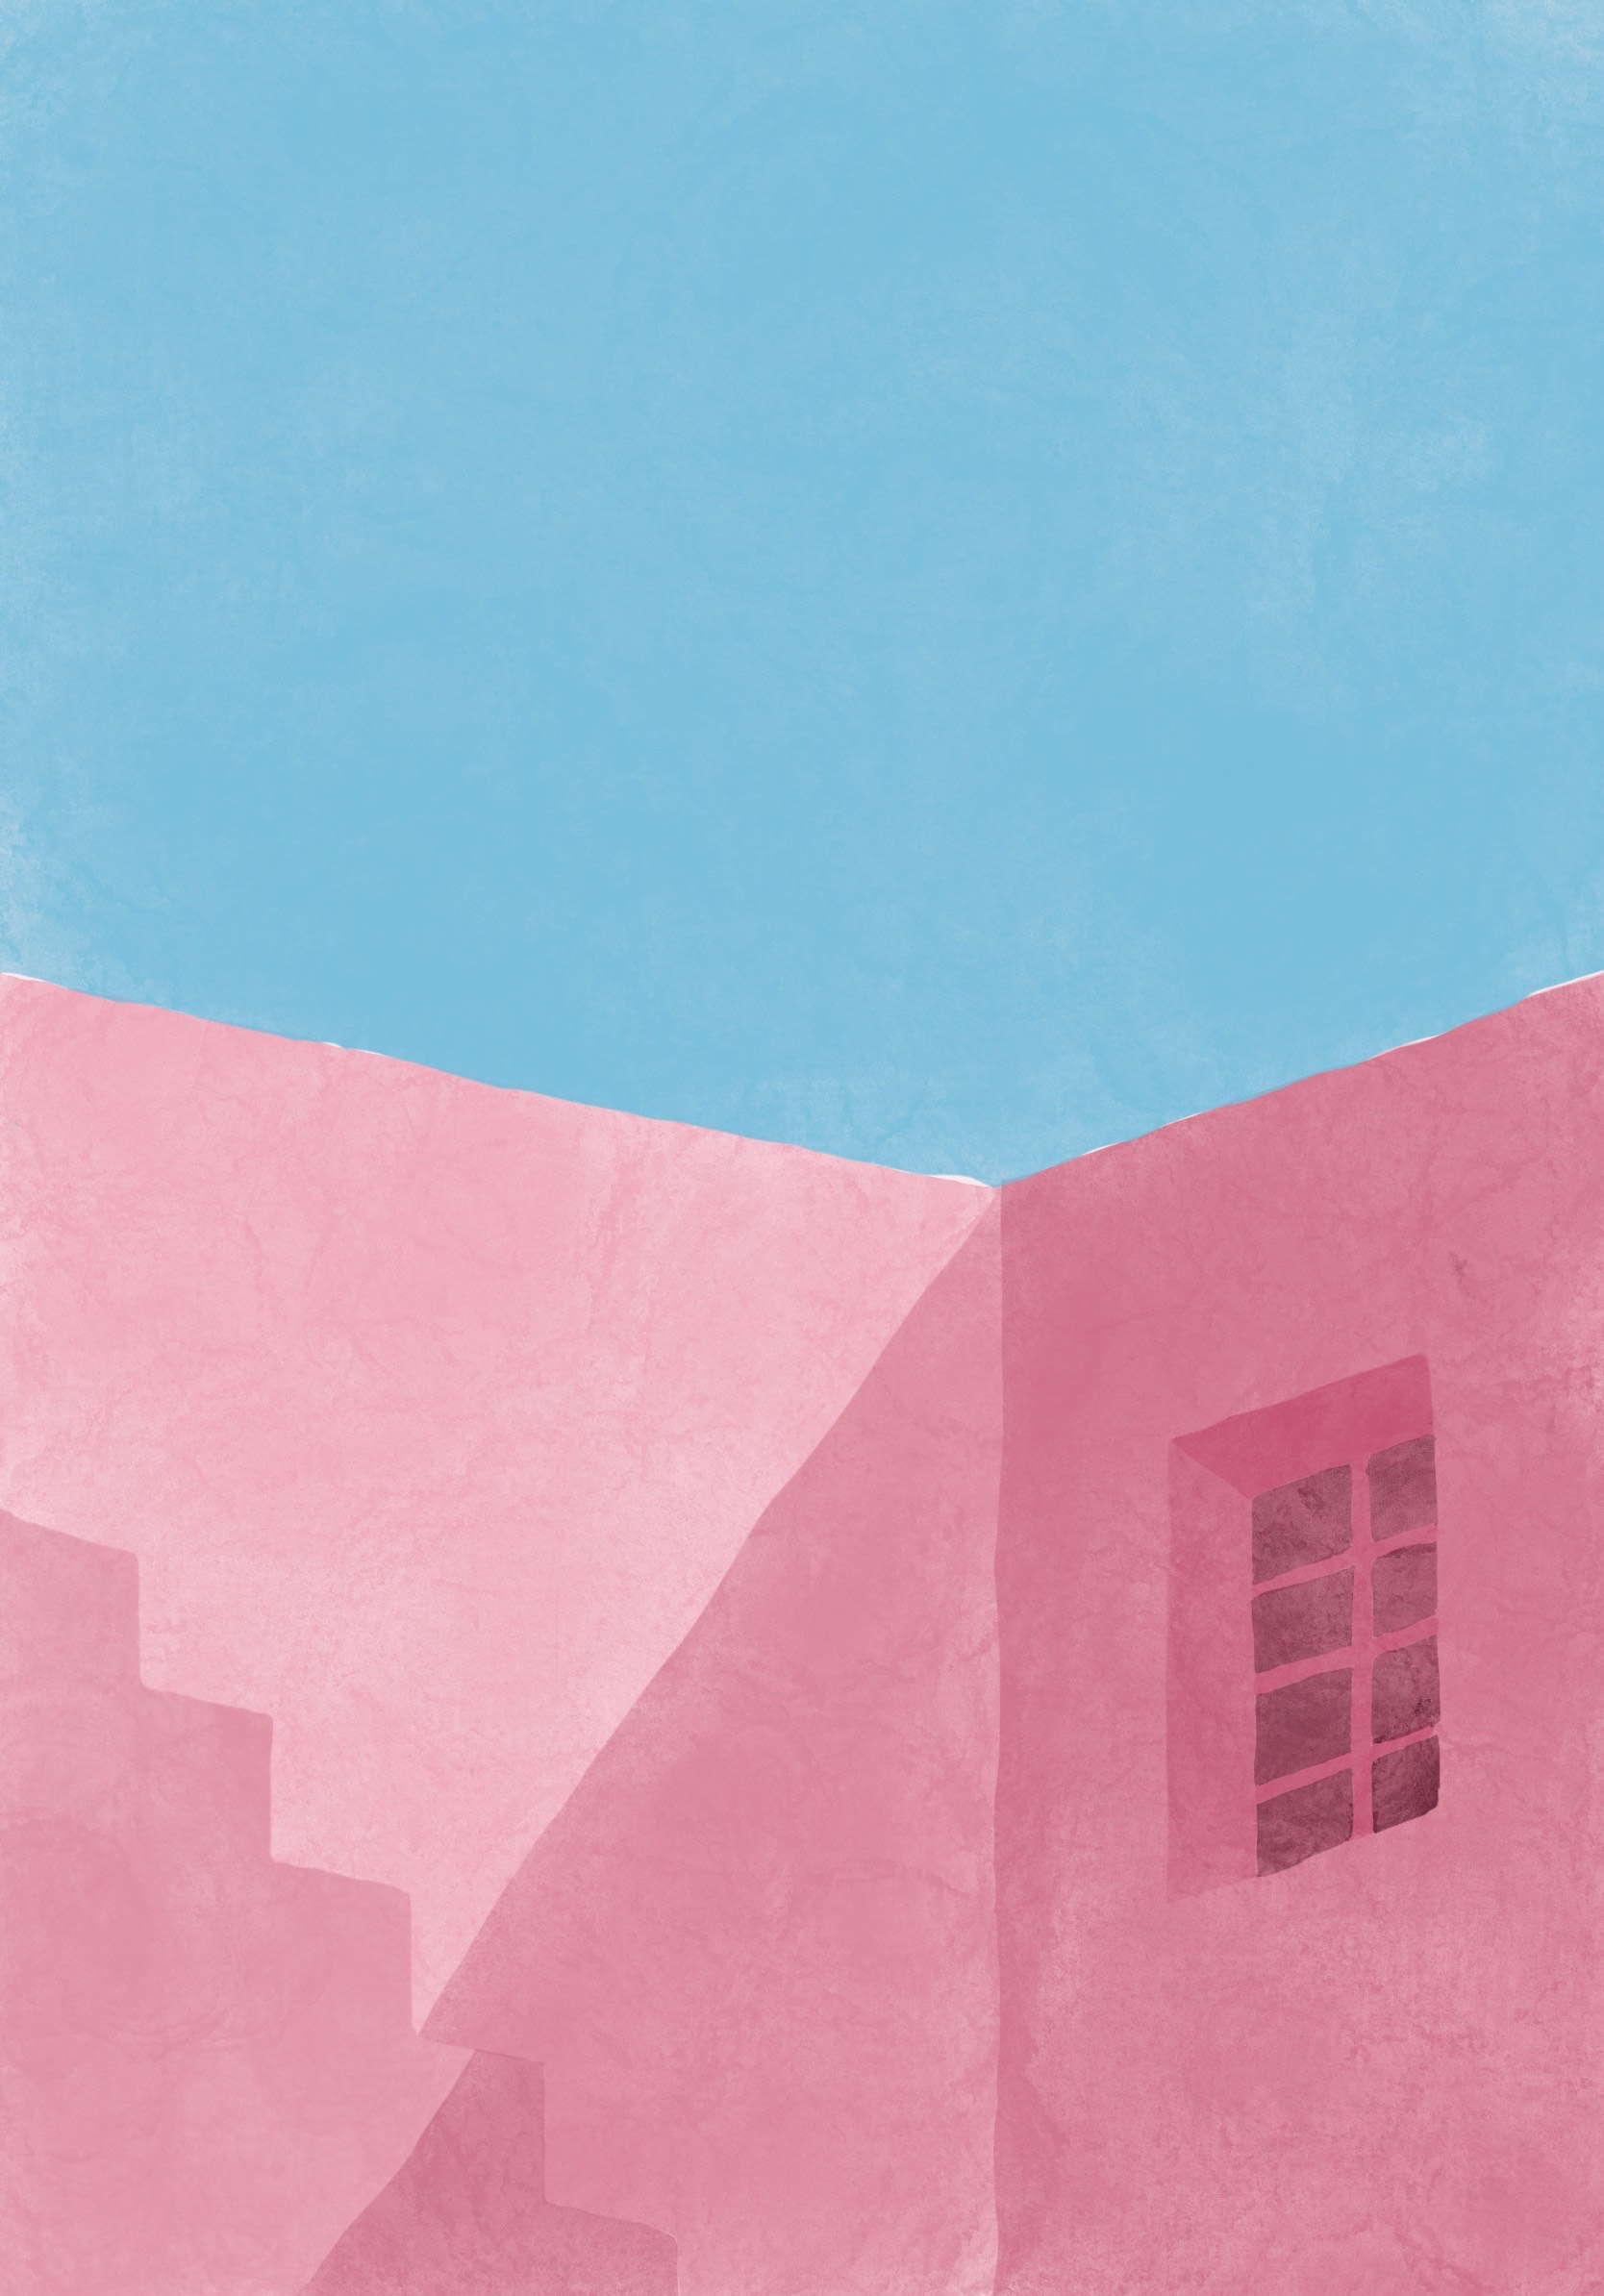 A pink mediterranean building under a clear blue sky with shadows bouncing off the edges of the building